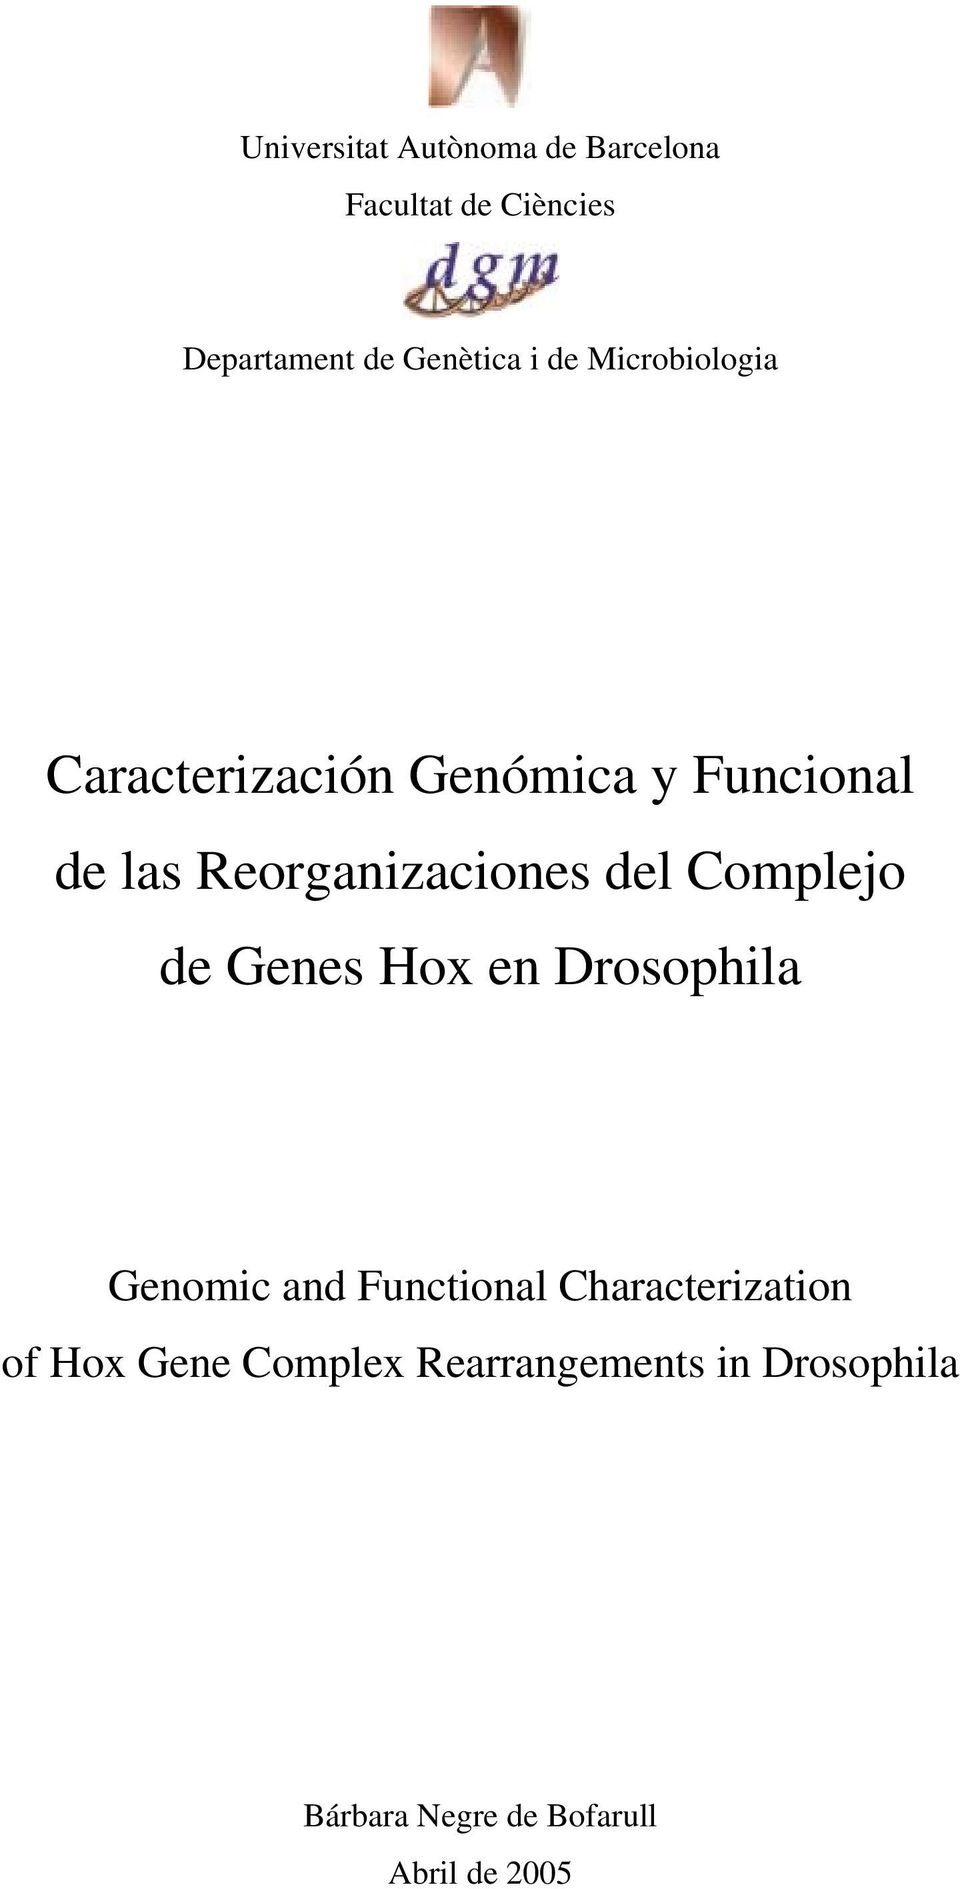 Complejo de Genes Hox en Drosophila Genomic and Functional Characterization of